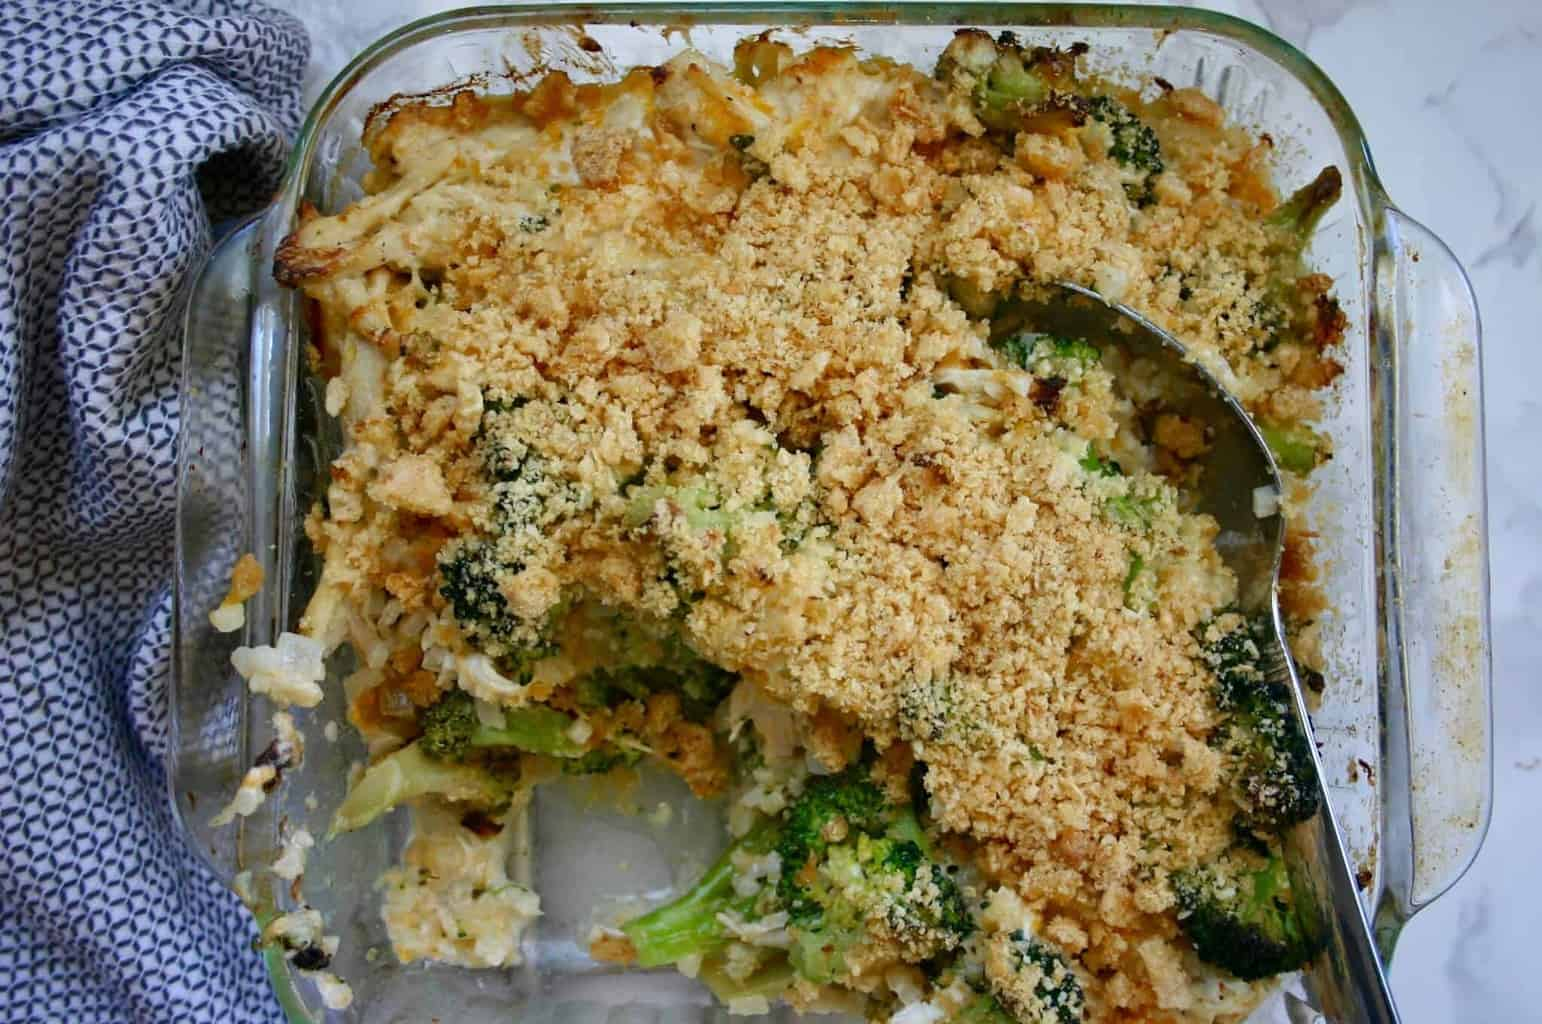 Need low carb dinner ideas? Add this low carb chicken broccoli casserole to your list of healthy dinner recipes to try!